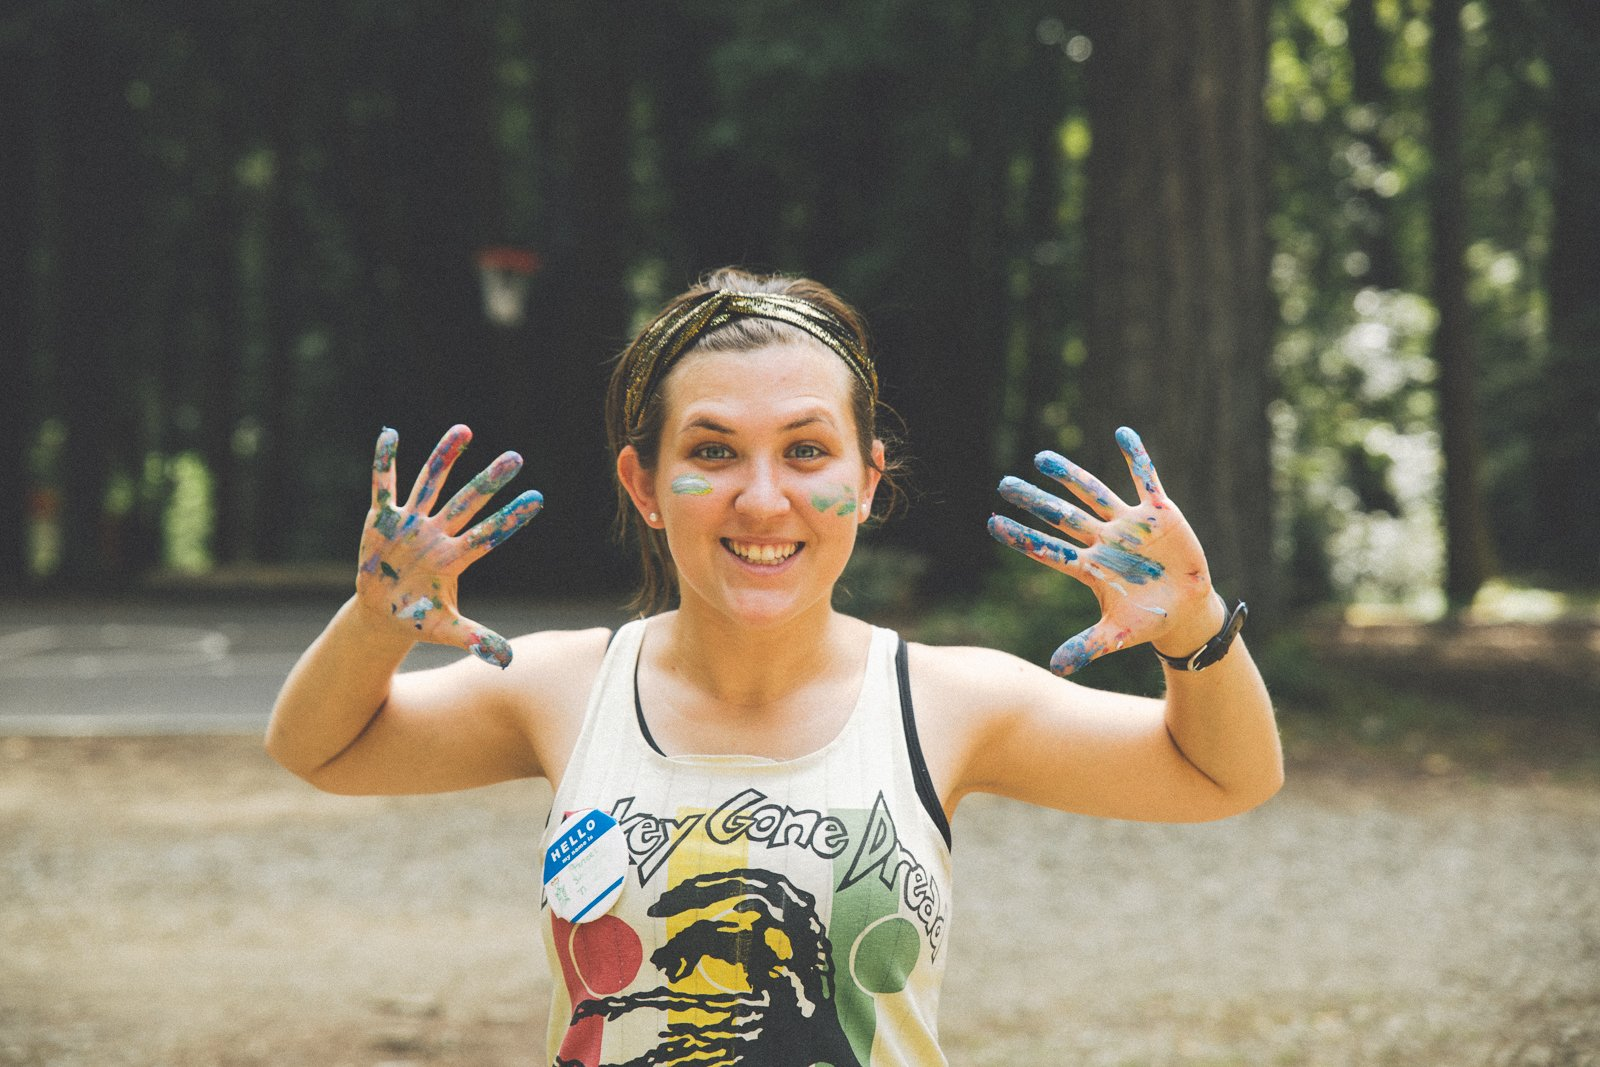 Smiling woman with paint on her hands and face standing in front of a forest